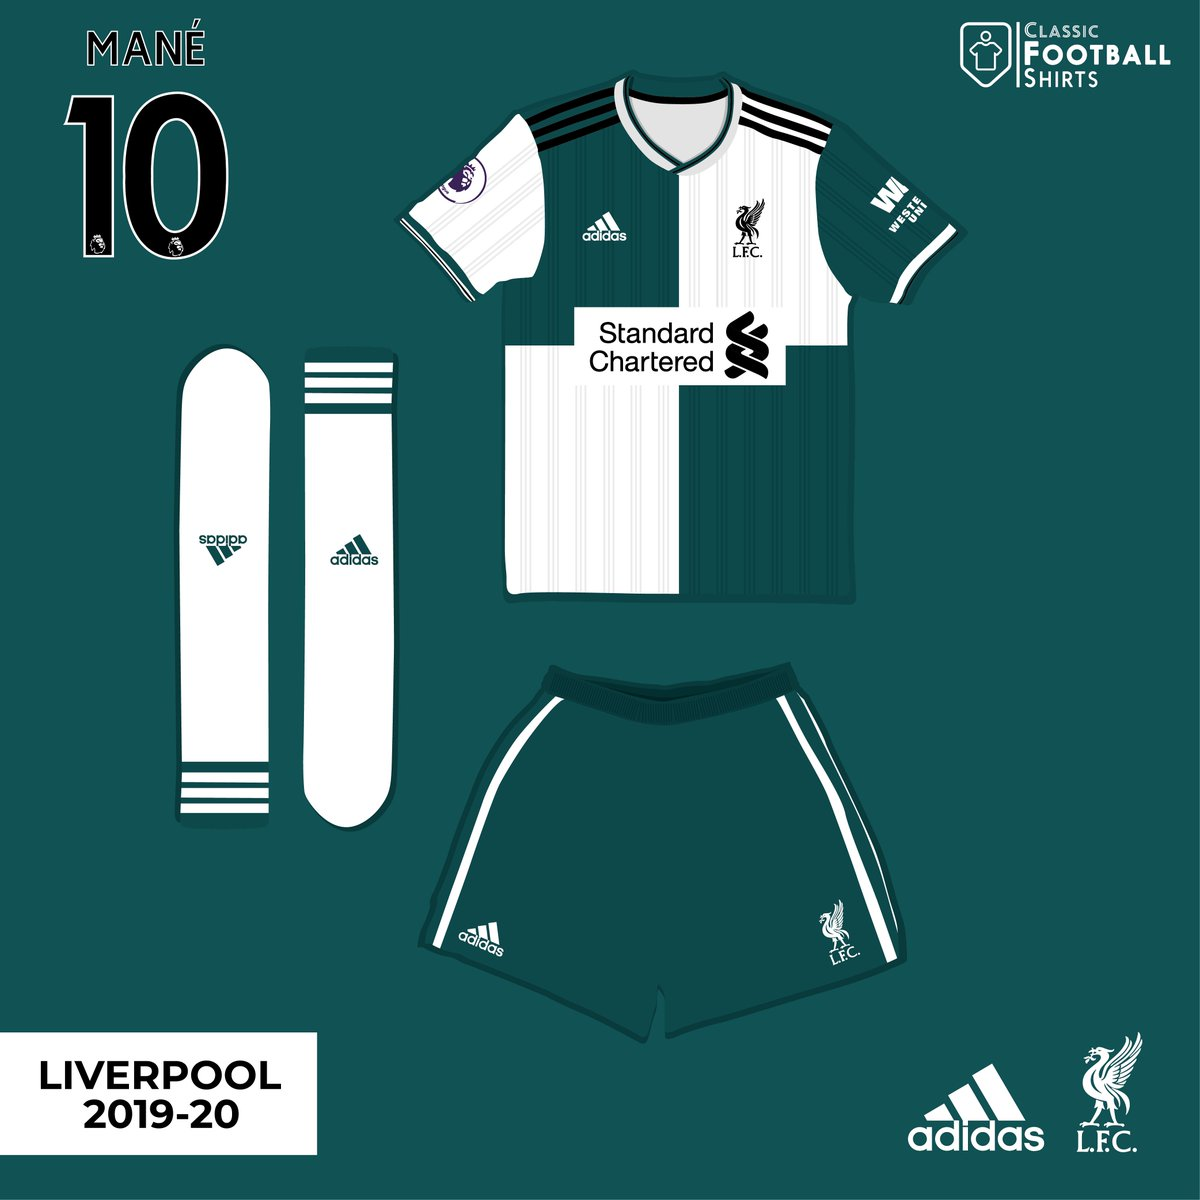 ee82f779 ... Adidas away shirt If rumours are true Liverpool could be heading back  to Adidas. Would you like to see this at Old Trafford next season?